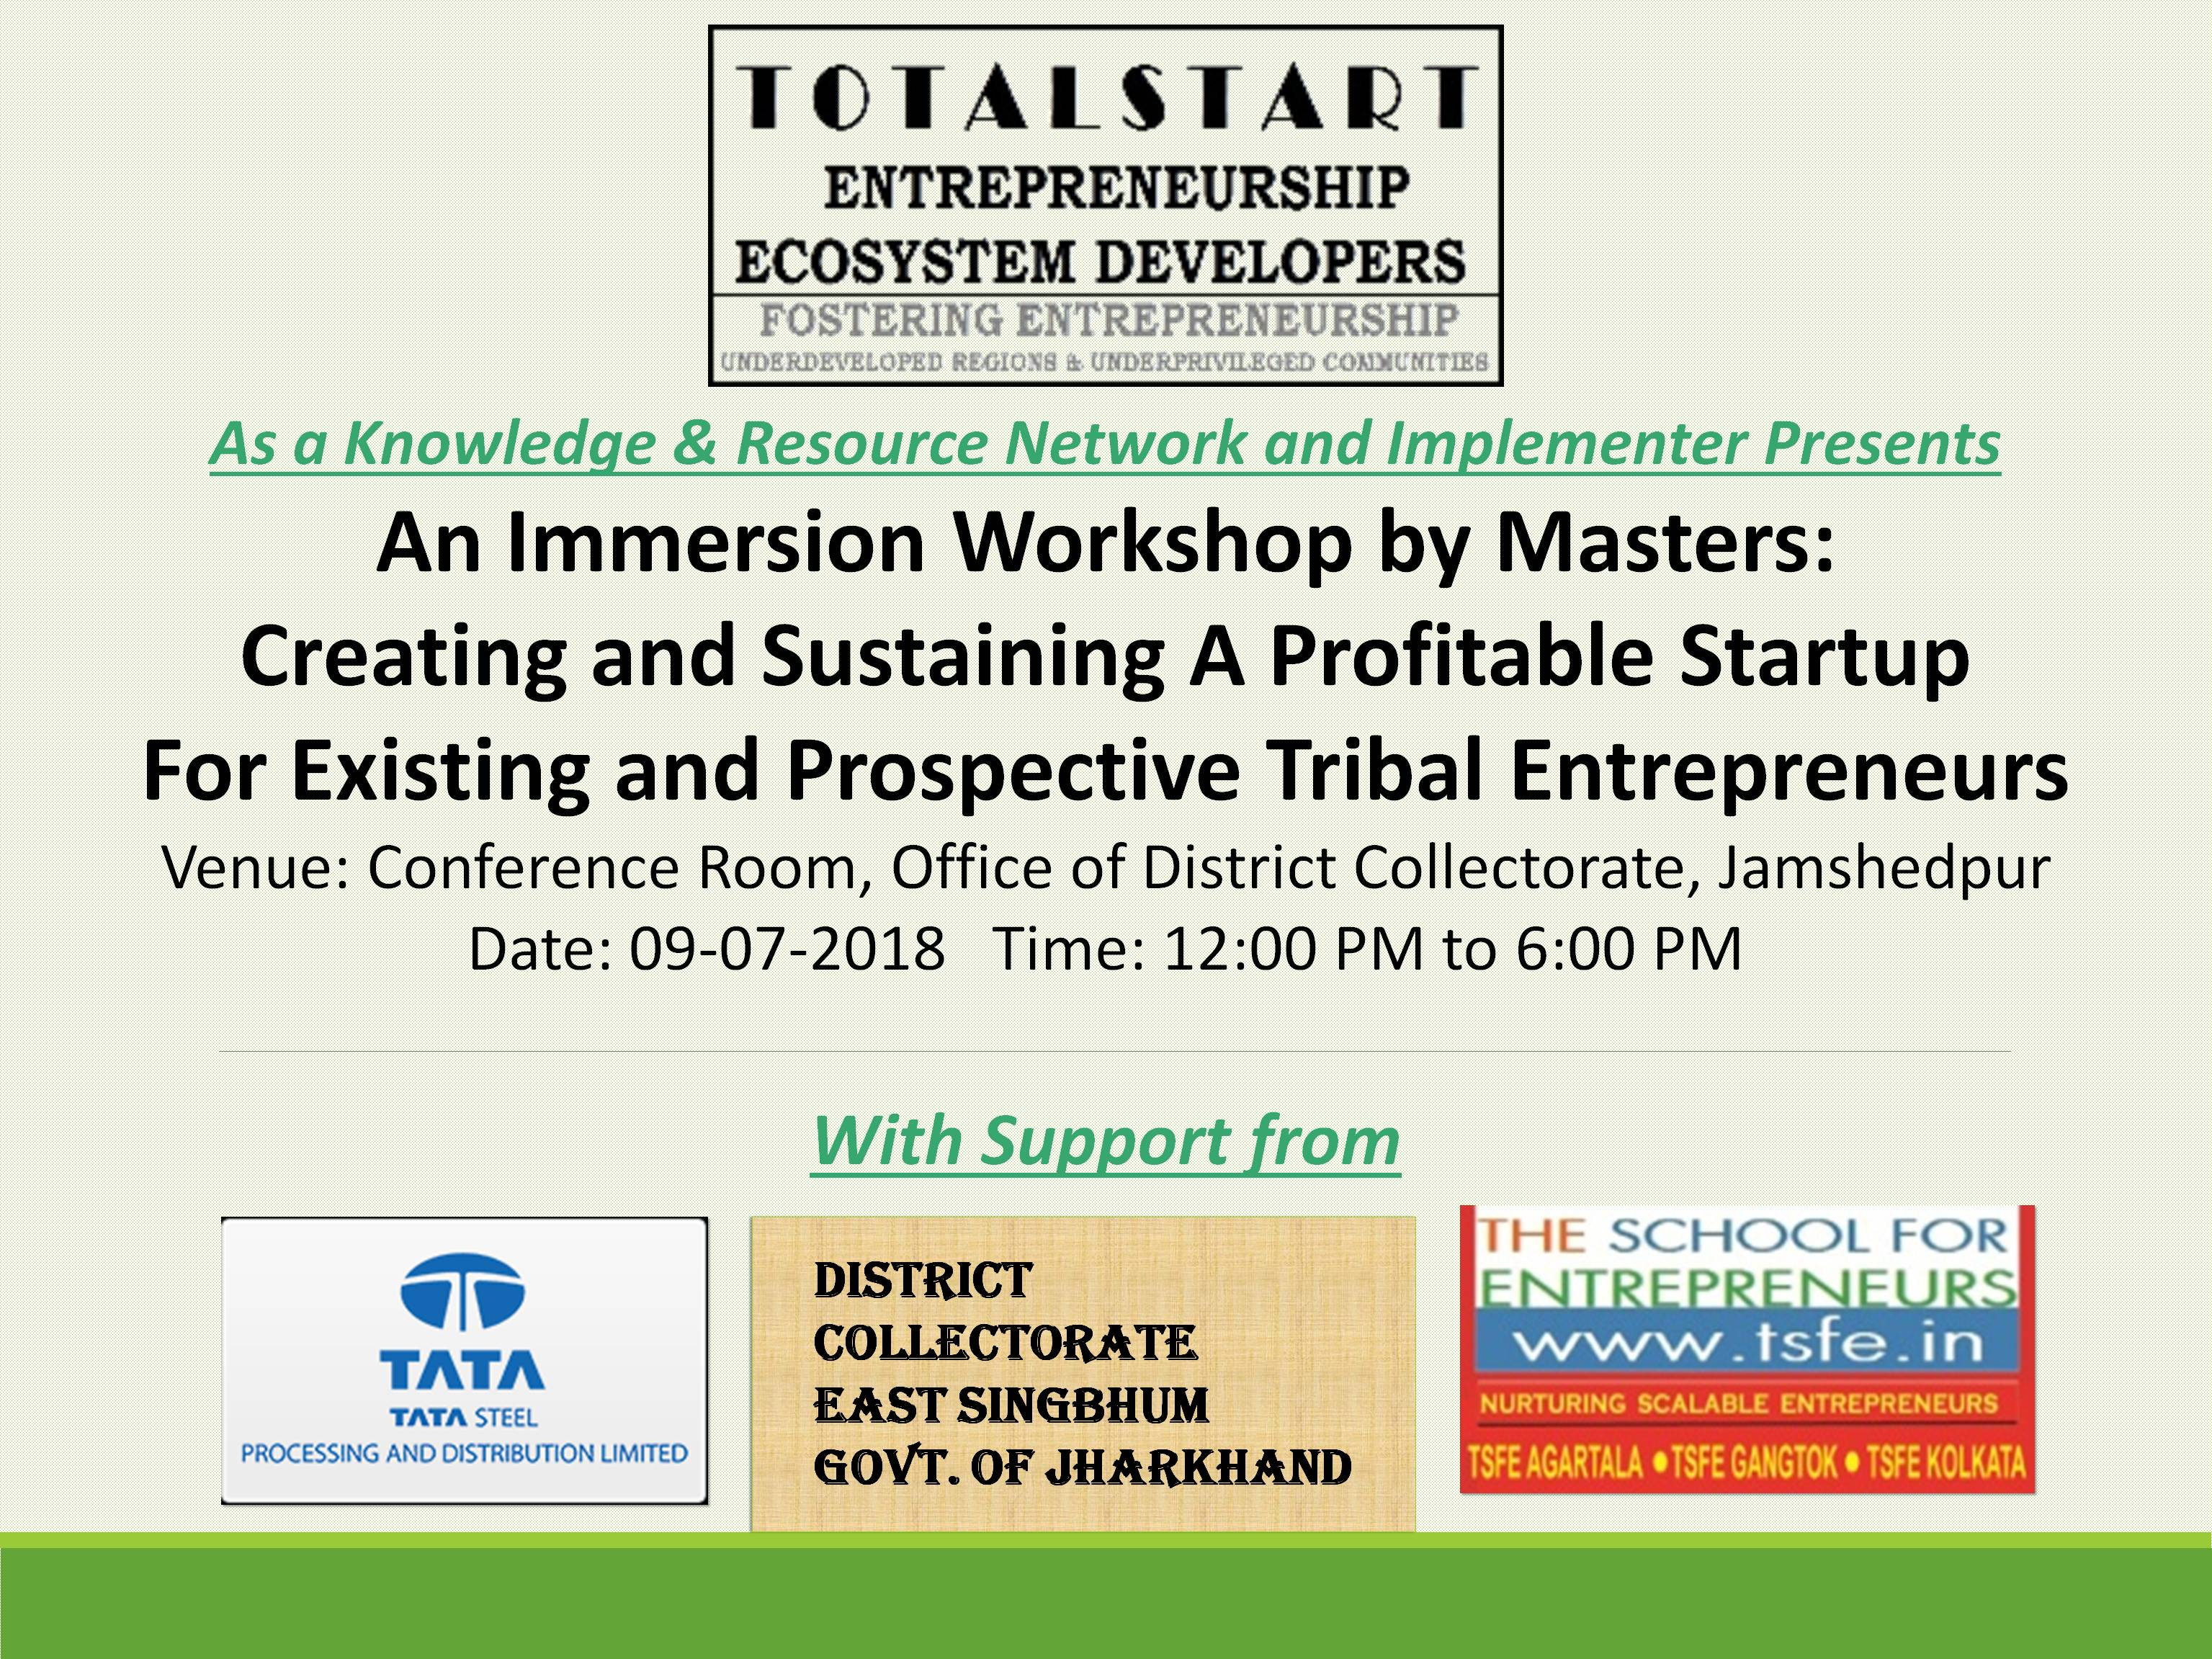 TotalStart's Immersion Workshop on Creating a Sustainable & Profitable Startup for Existing and Prospective Tribal Entrepreneurs v1.1